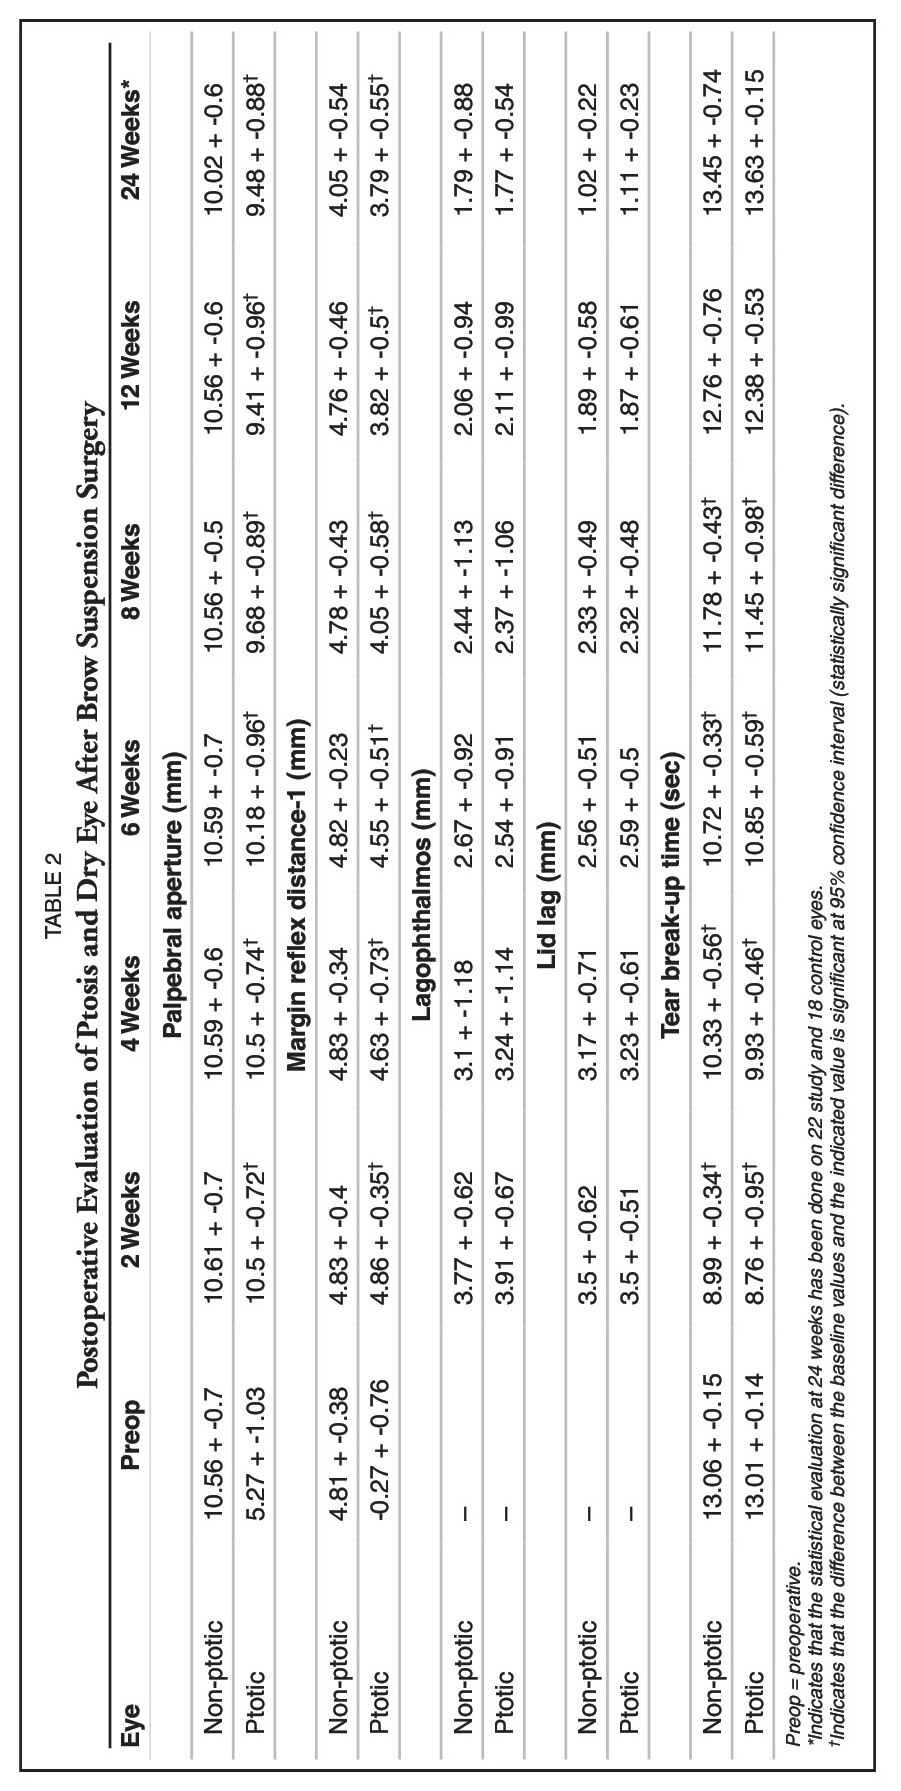 Clinical Evaluation of Refractive Changes Following Brow